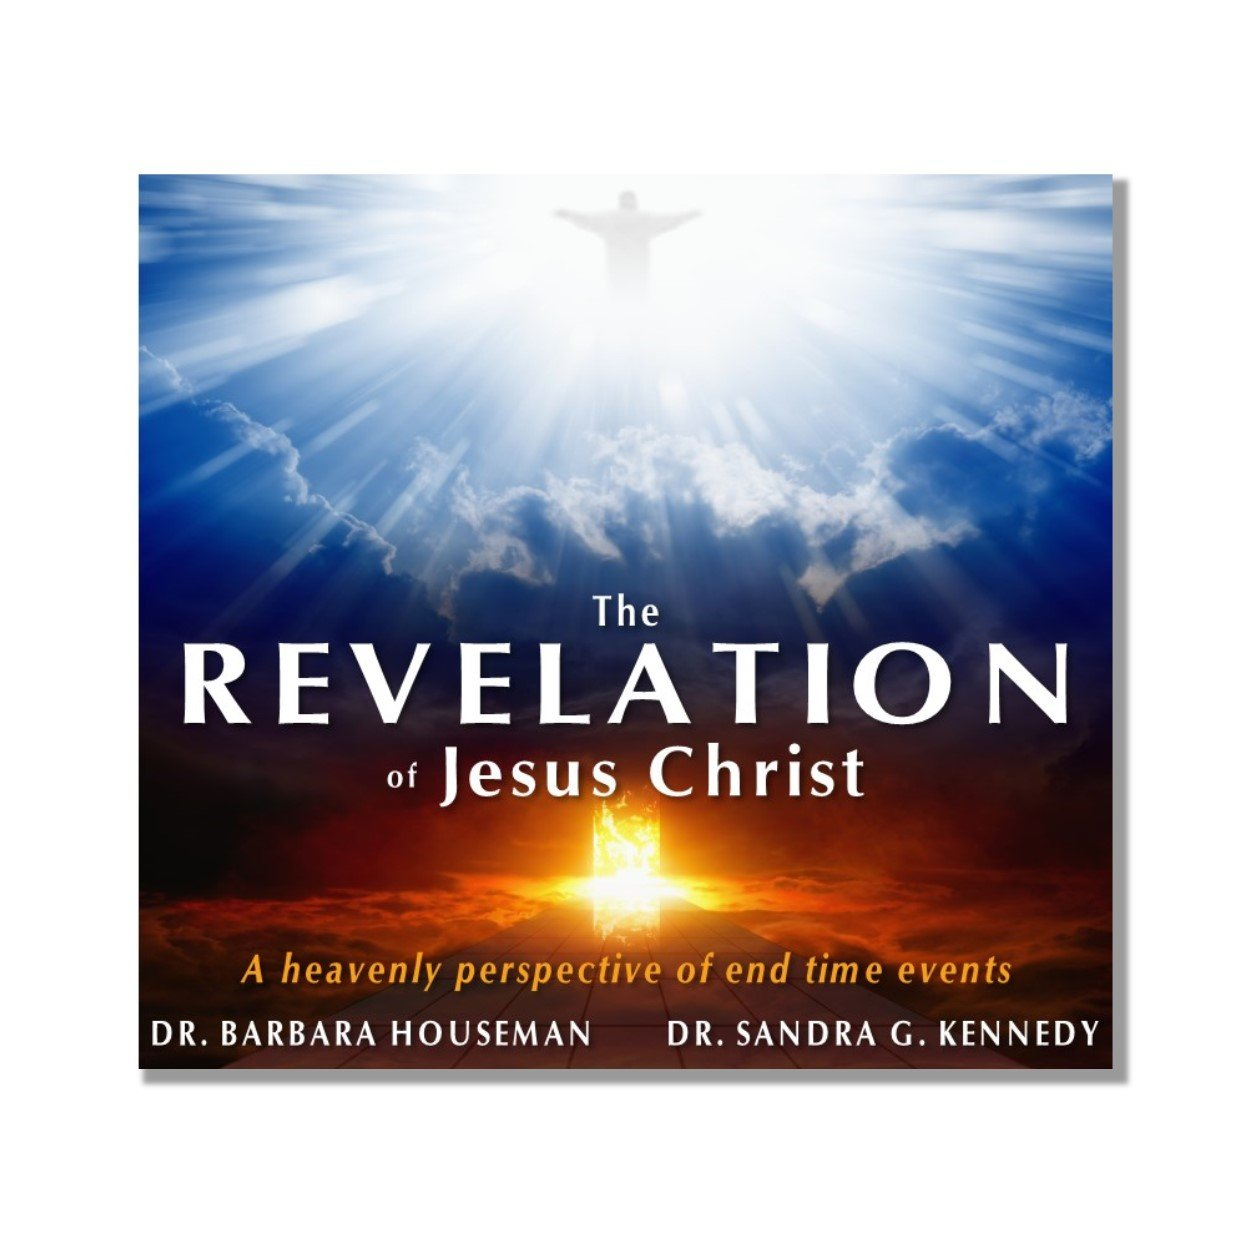 unique revelation of jesus christ Revelation is a book which presents the great revealing it discloses the full character and identity of jesus of nazareth by lifting the veil this is a noteworthy title throughout the bible a survey of the gospels will reveal that this is the designation christ used most often of himself during his earthly.